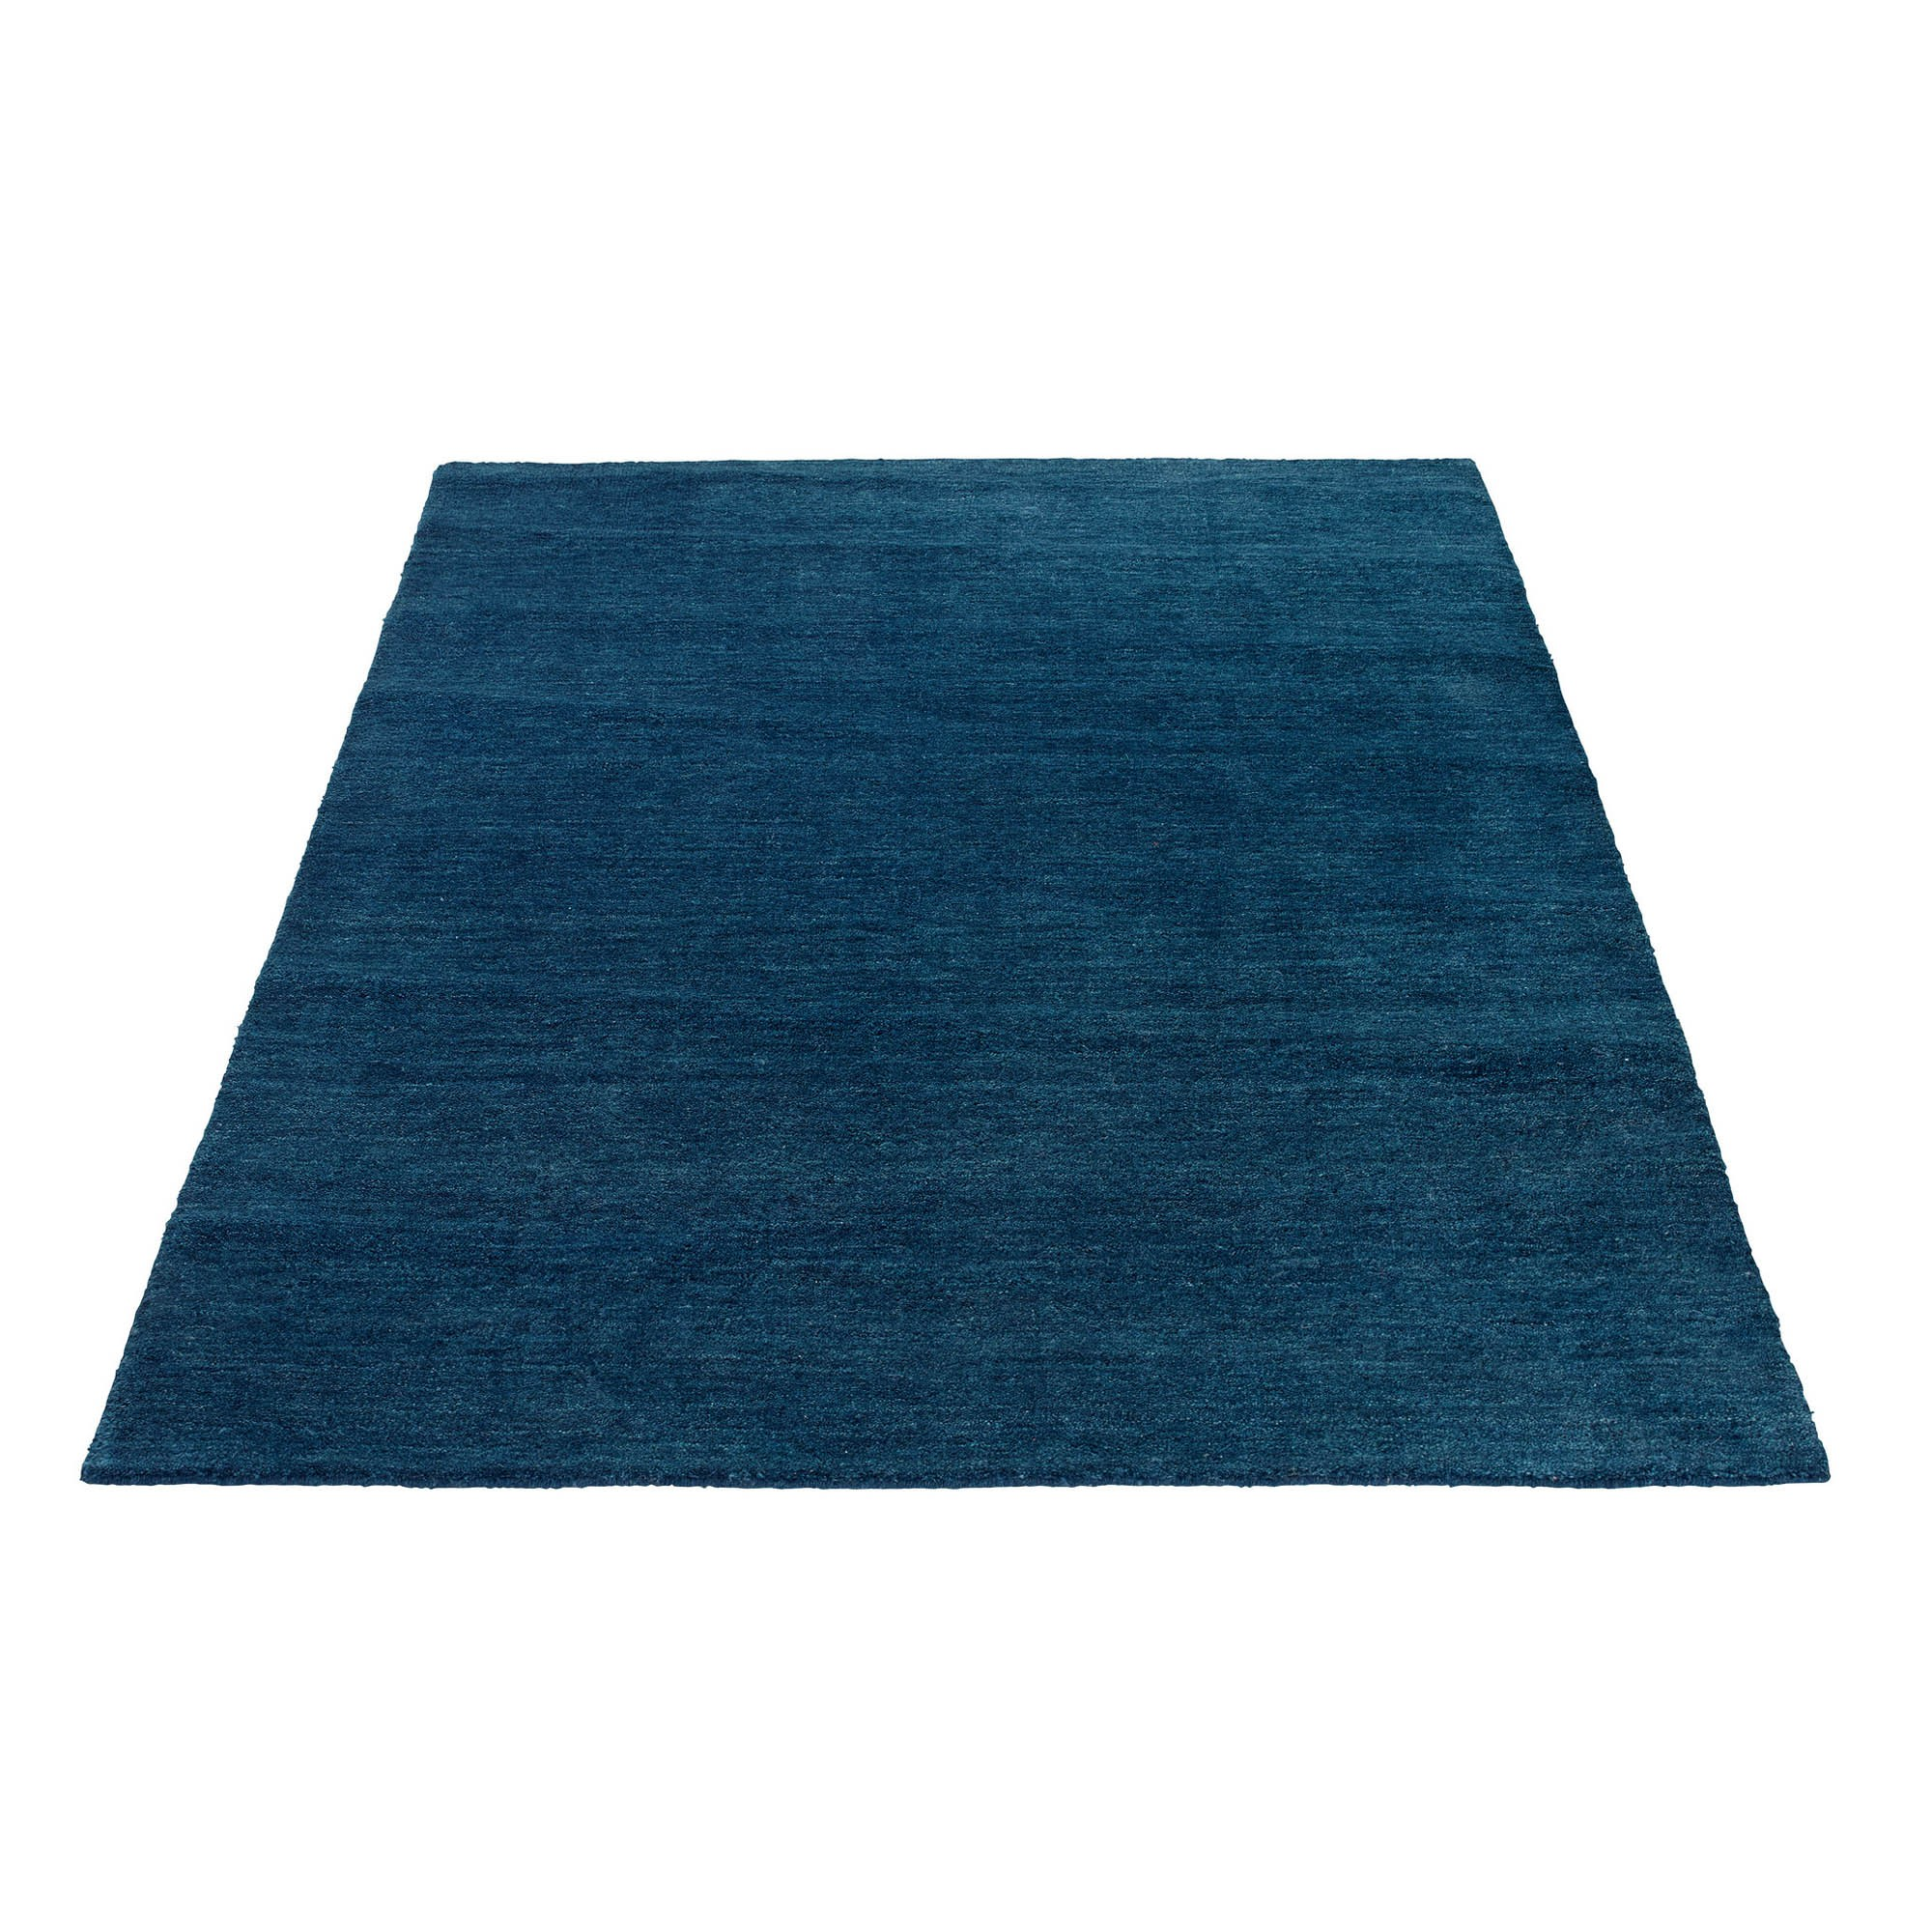 tapis bleu petrole good salom prestige tapis de bain modal bleu ptrole salom prestige with. Black Bedroom Furniture Sets. Home Design Ideas